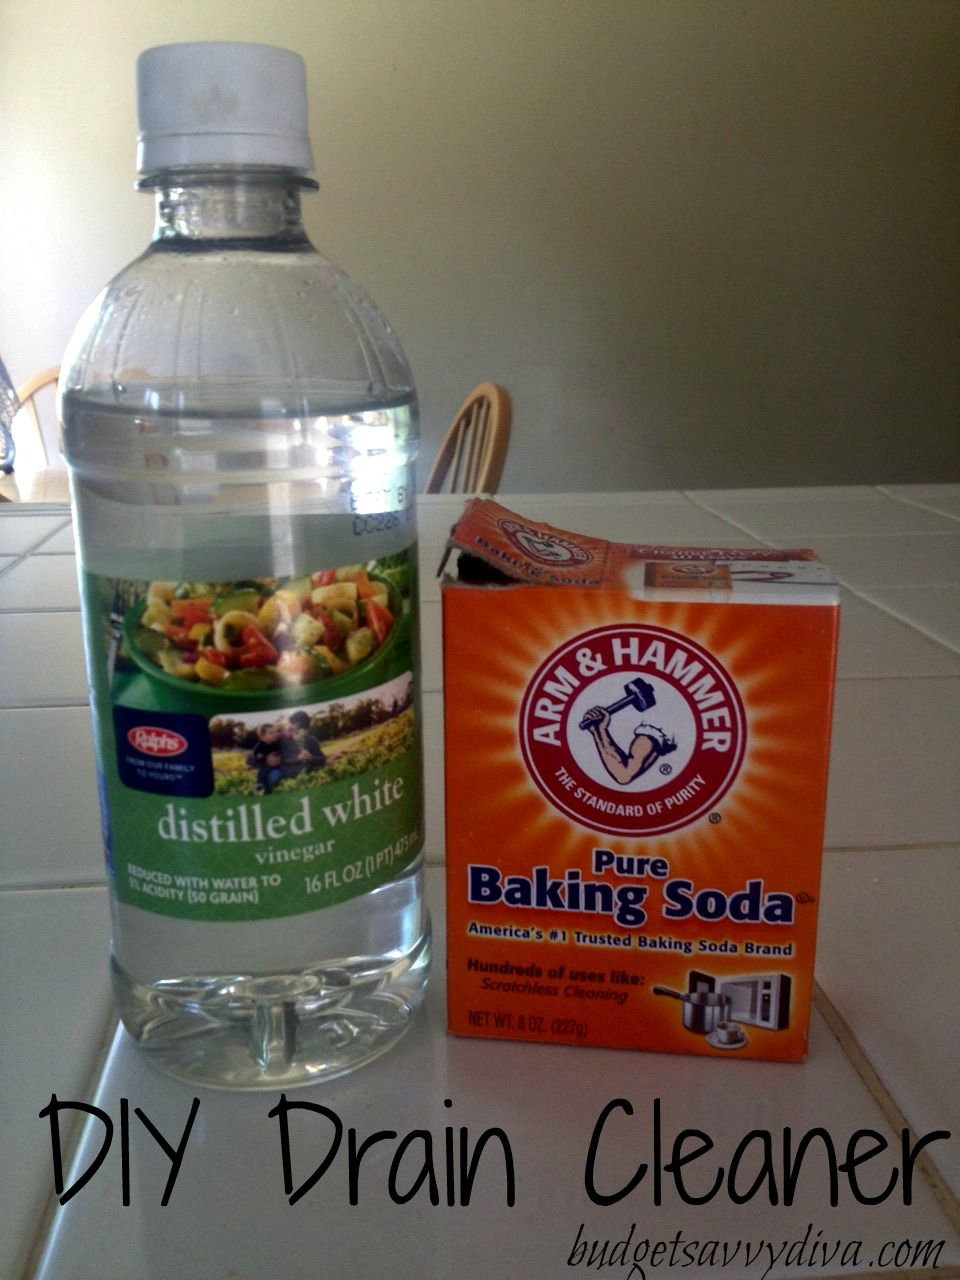 pour 3/4-1 cup of baking soda into the drain. pour 1/2 cup vinegar